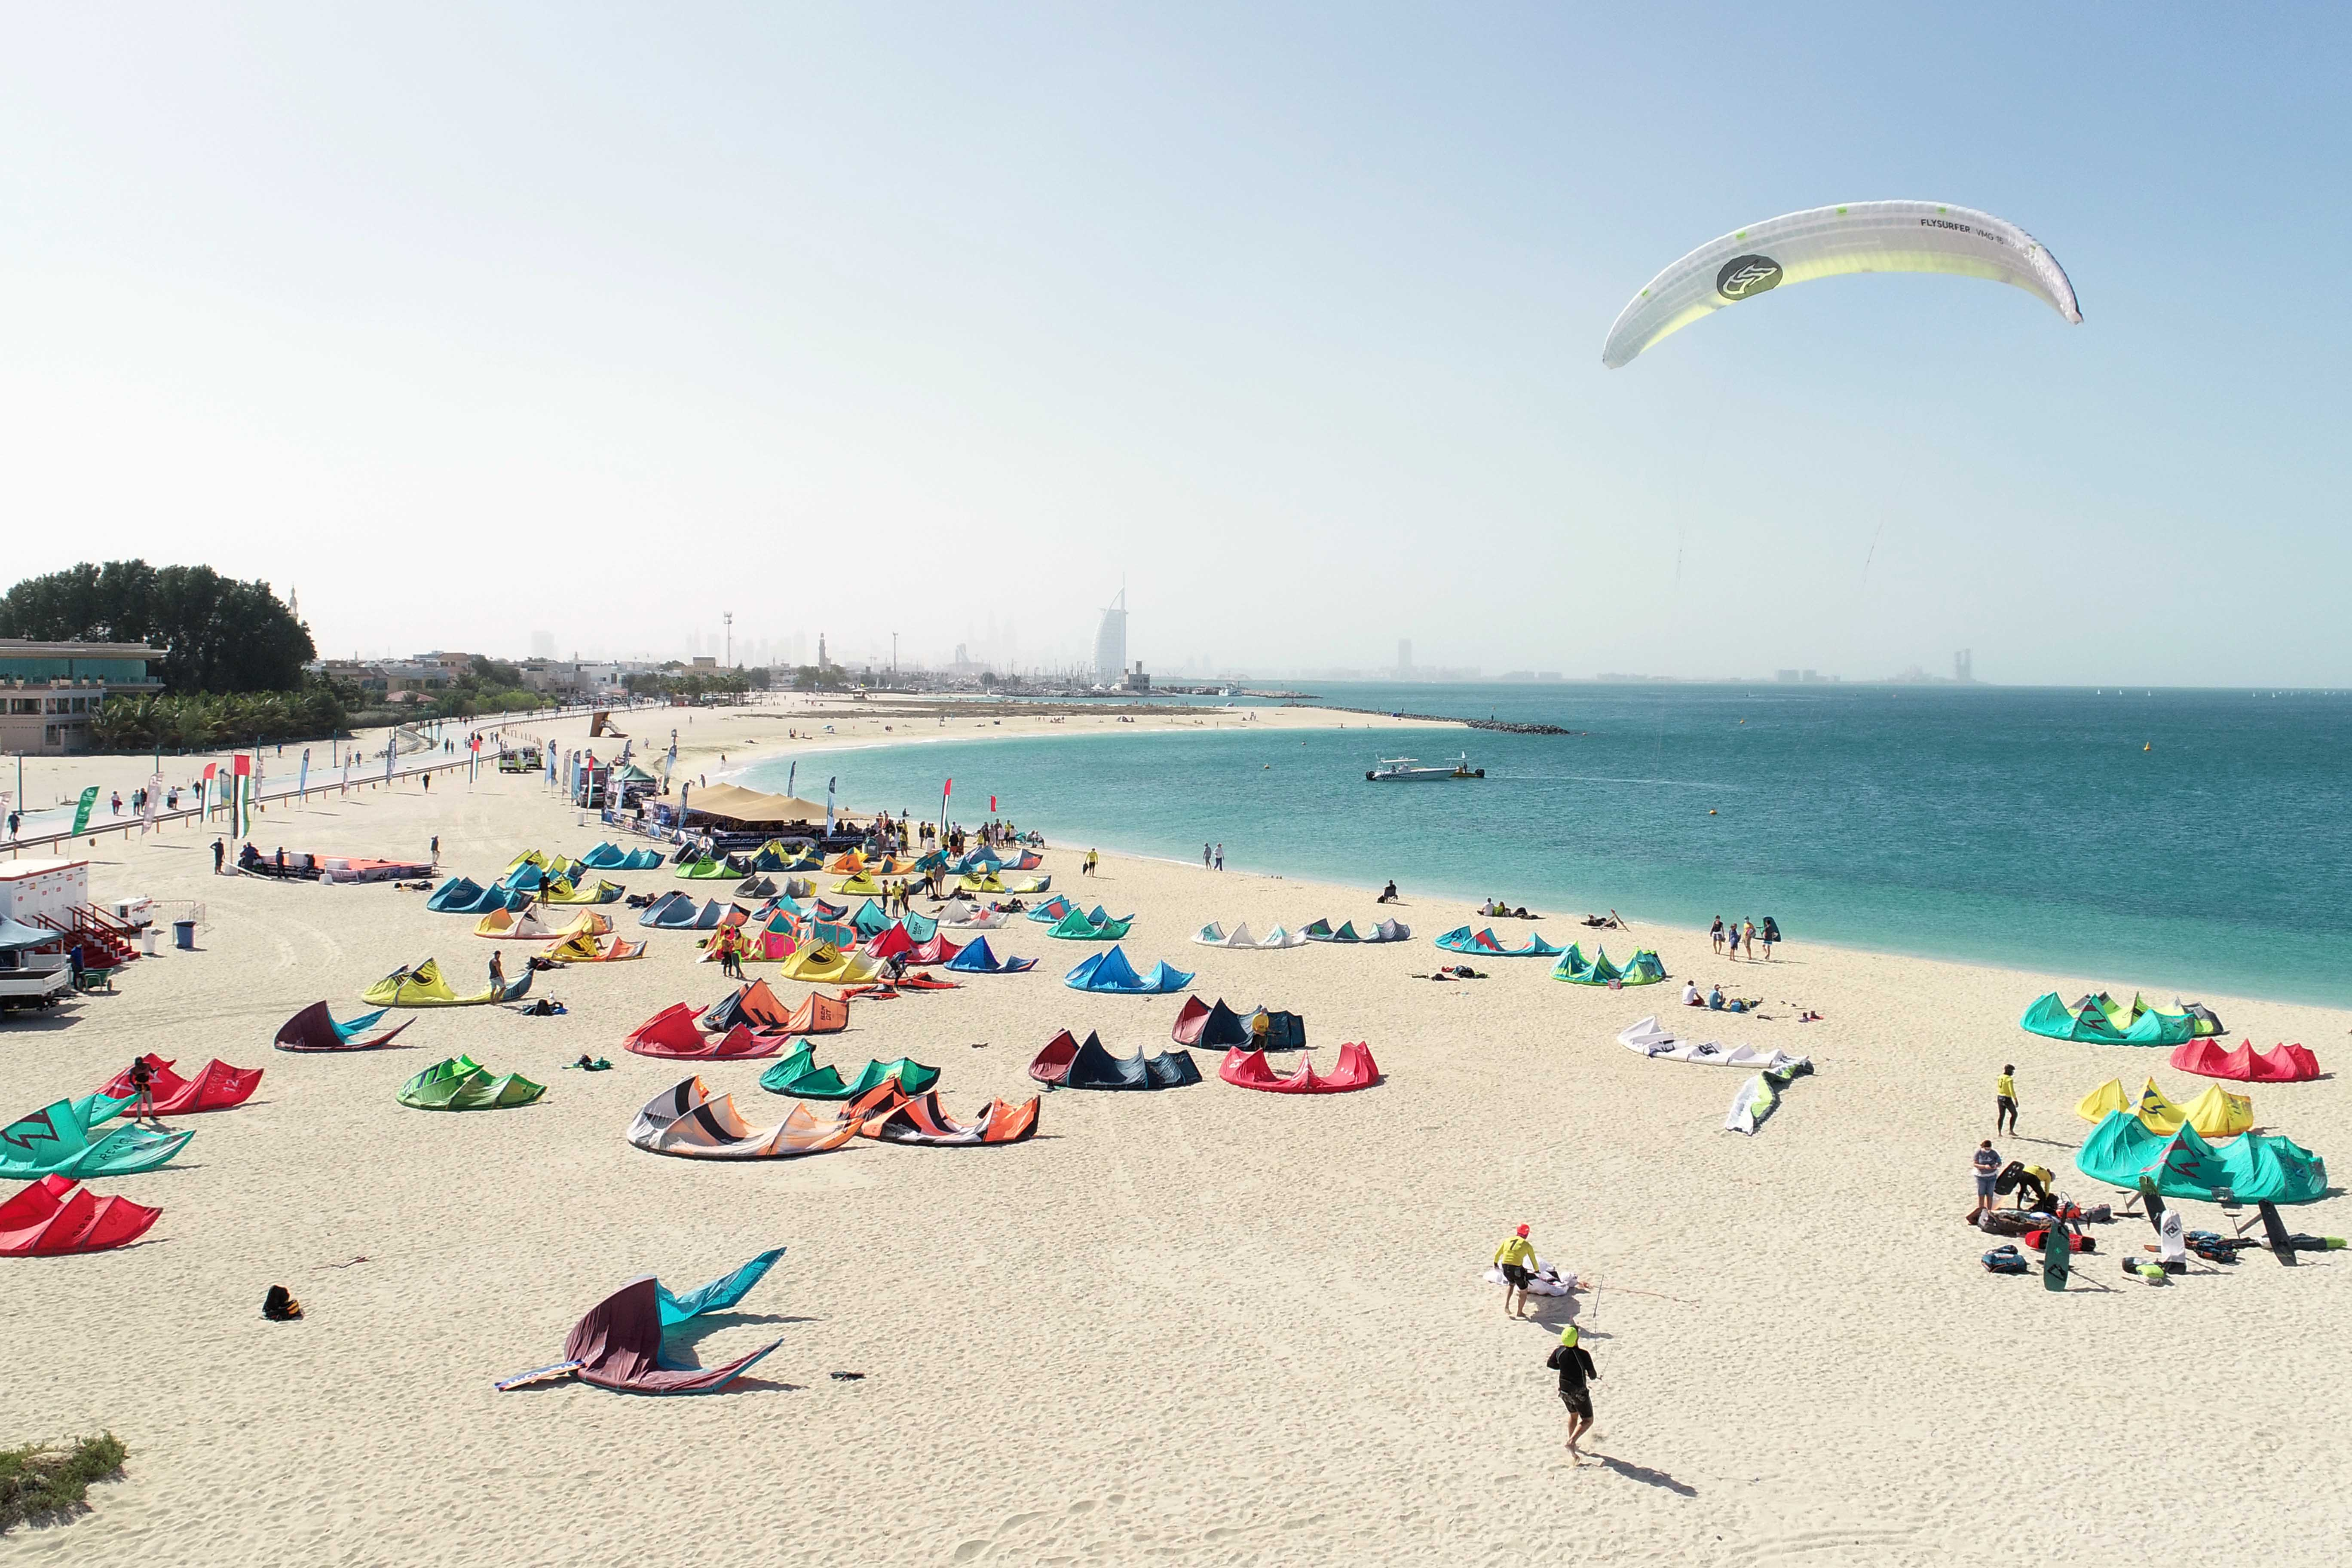 The conclusion of the first round of the Dubai Kitesurf Open today